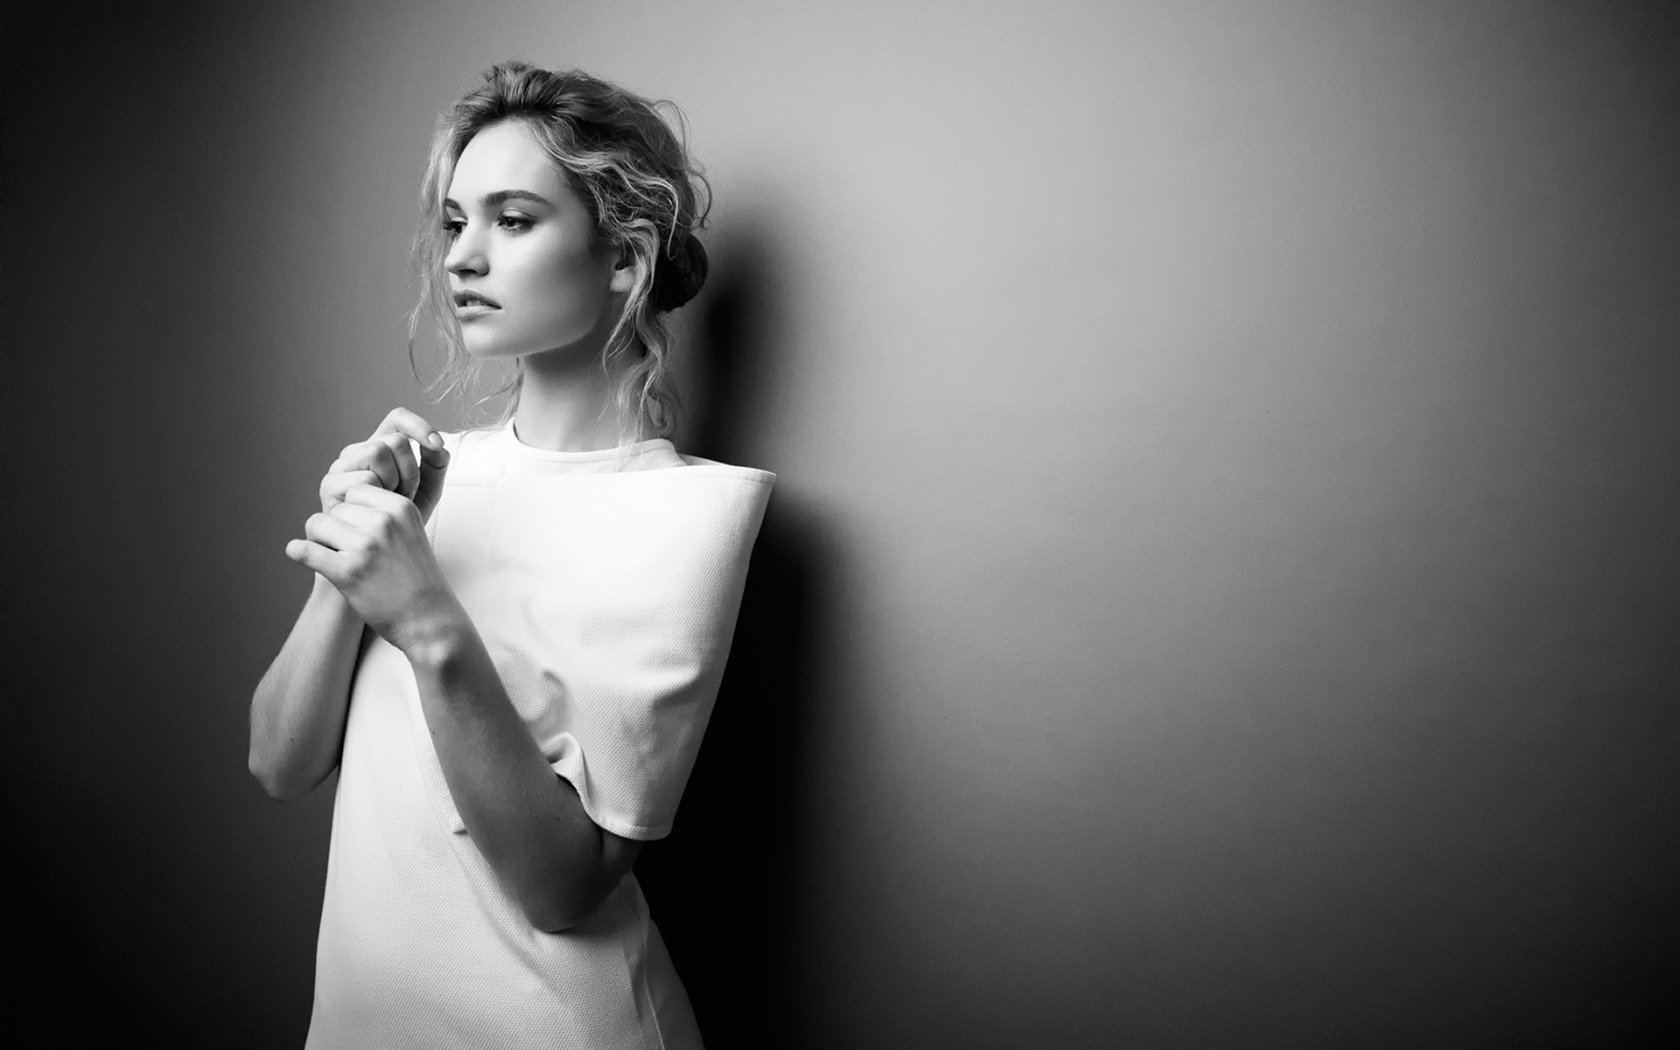 on October 5 2015 By admin Comments Off on Lily James Wallpaper 1680x1050